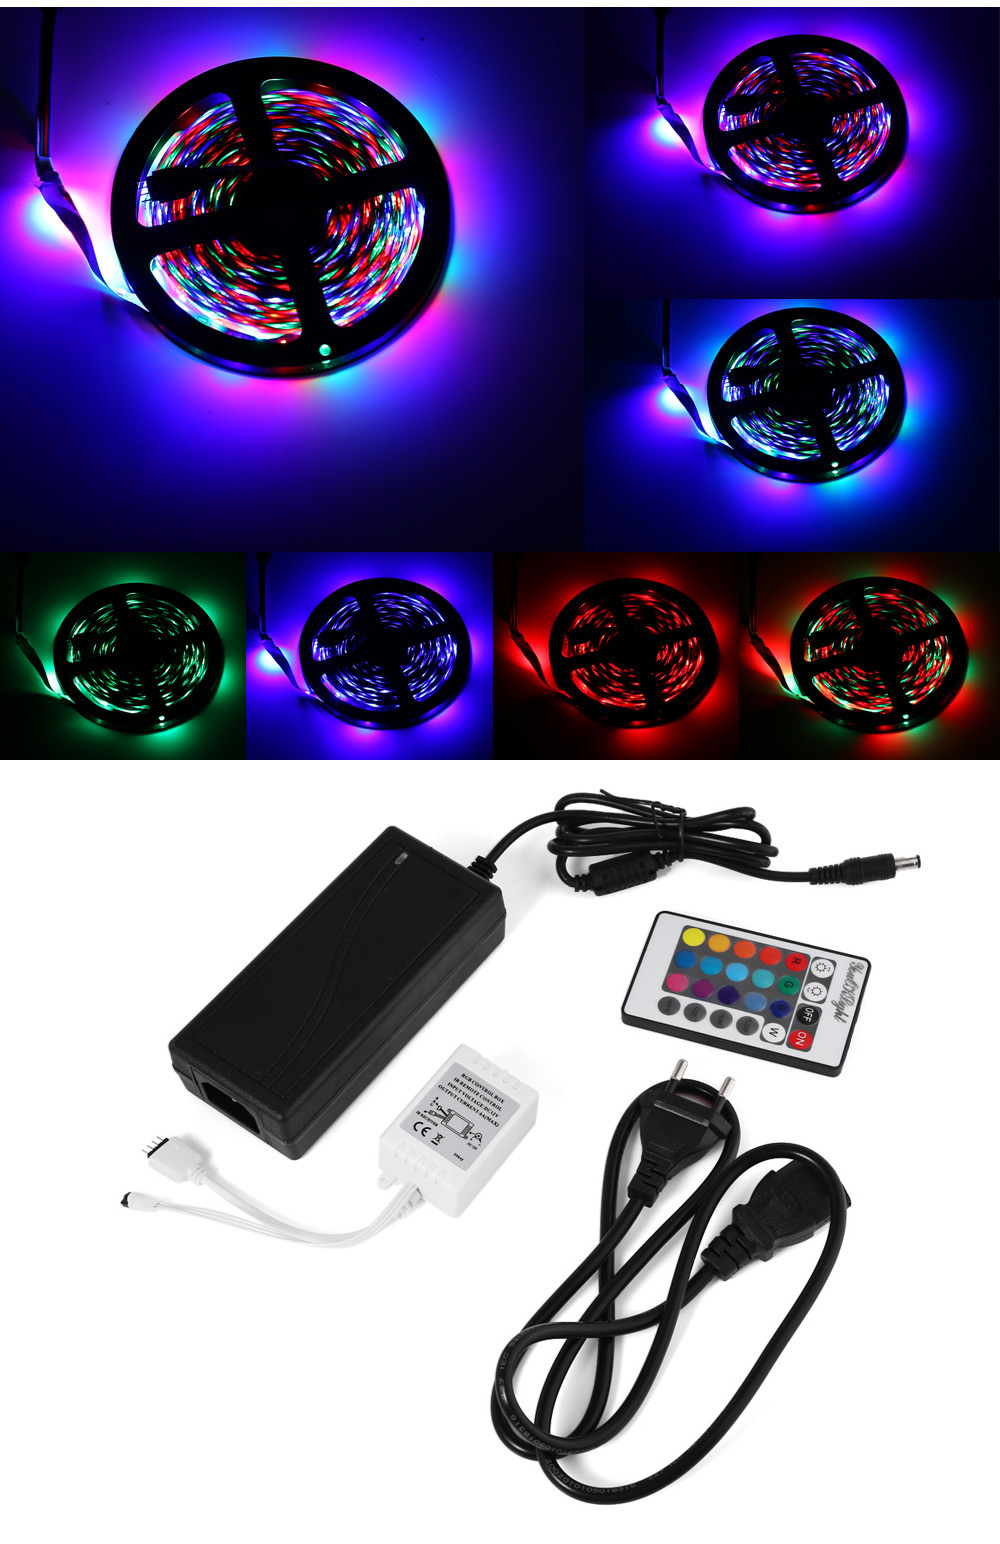 YouOKLight 10M 50W 600 x SMD3528 RGB LED Rope Light + Controller + Adapter